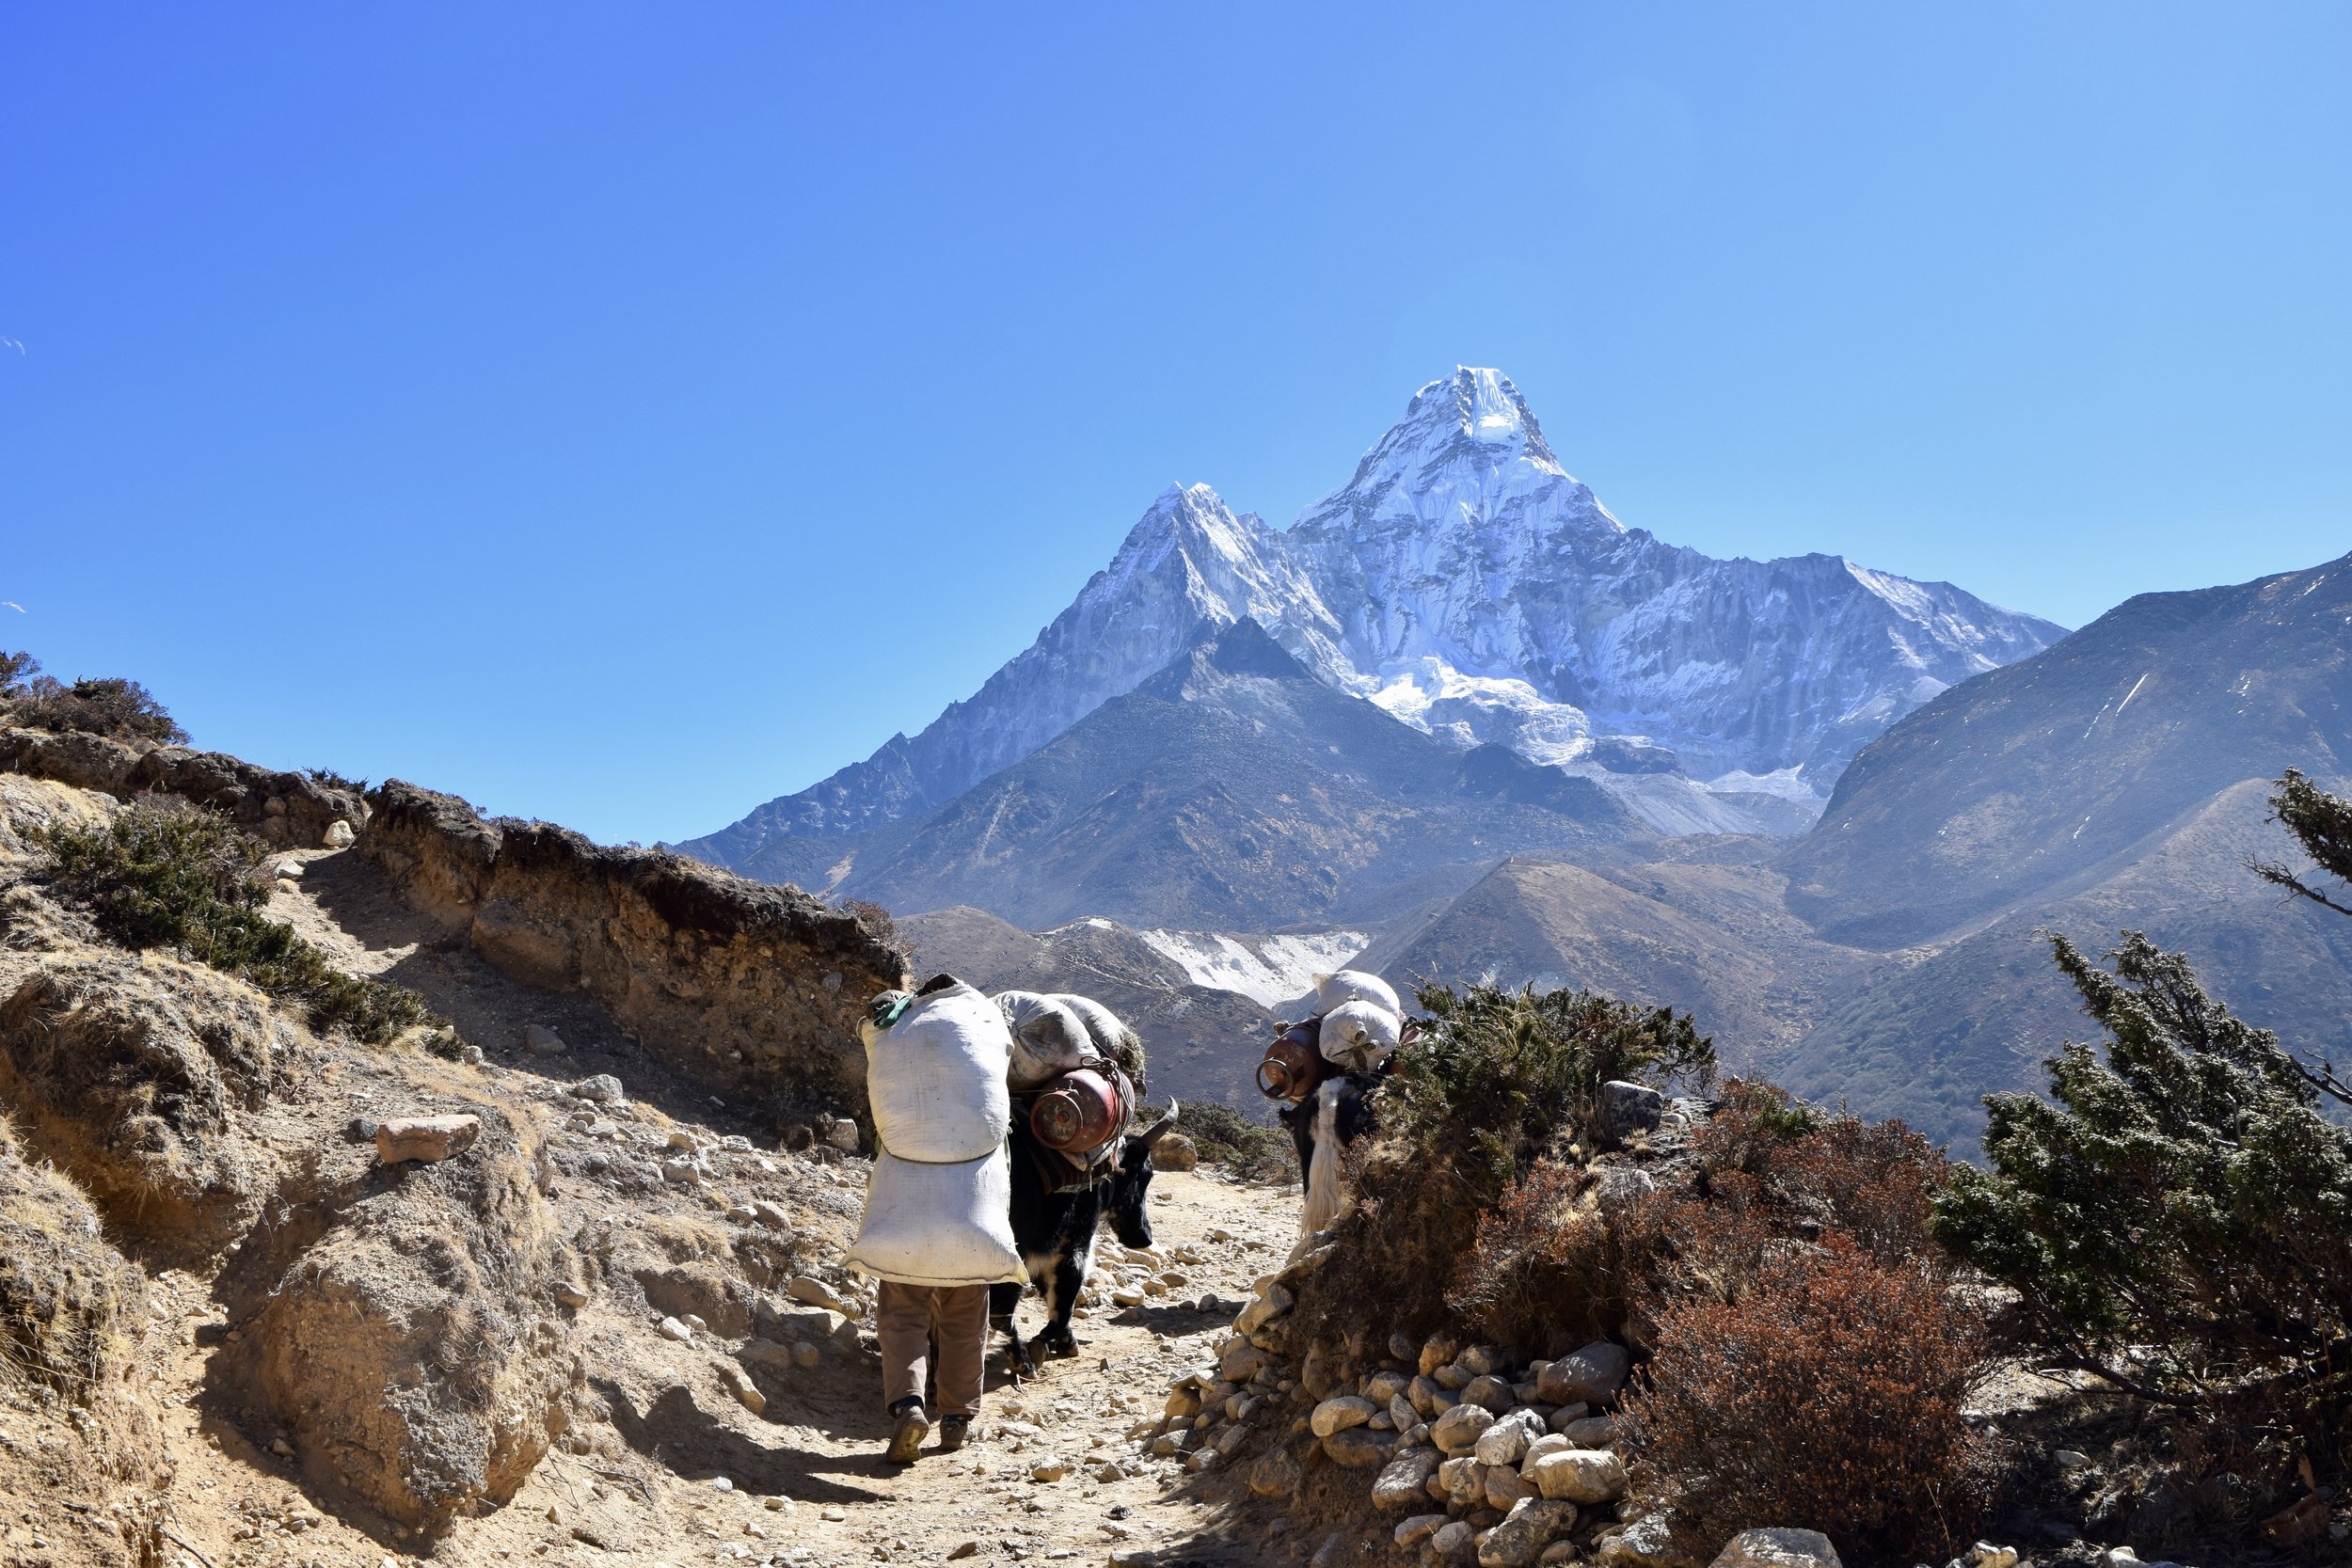 Dusty walk to Dingboche